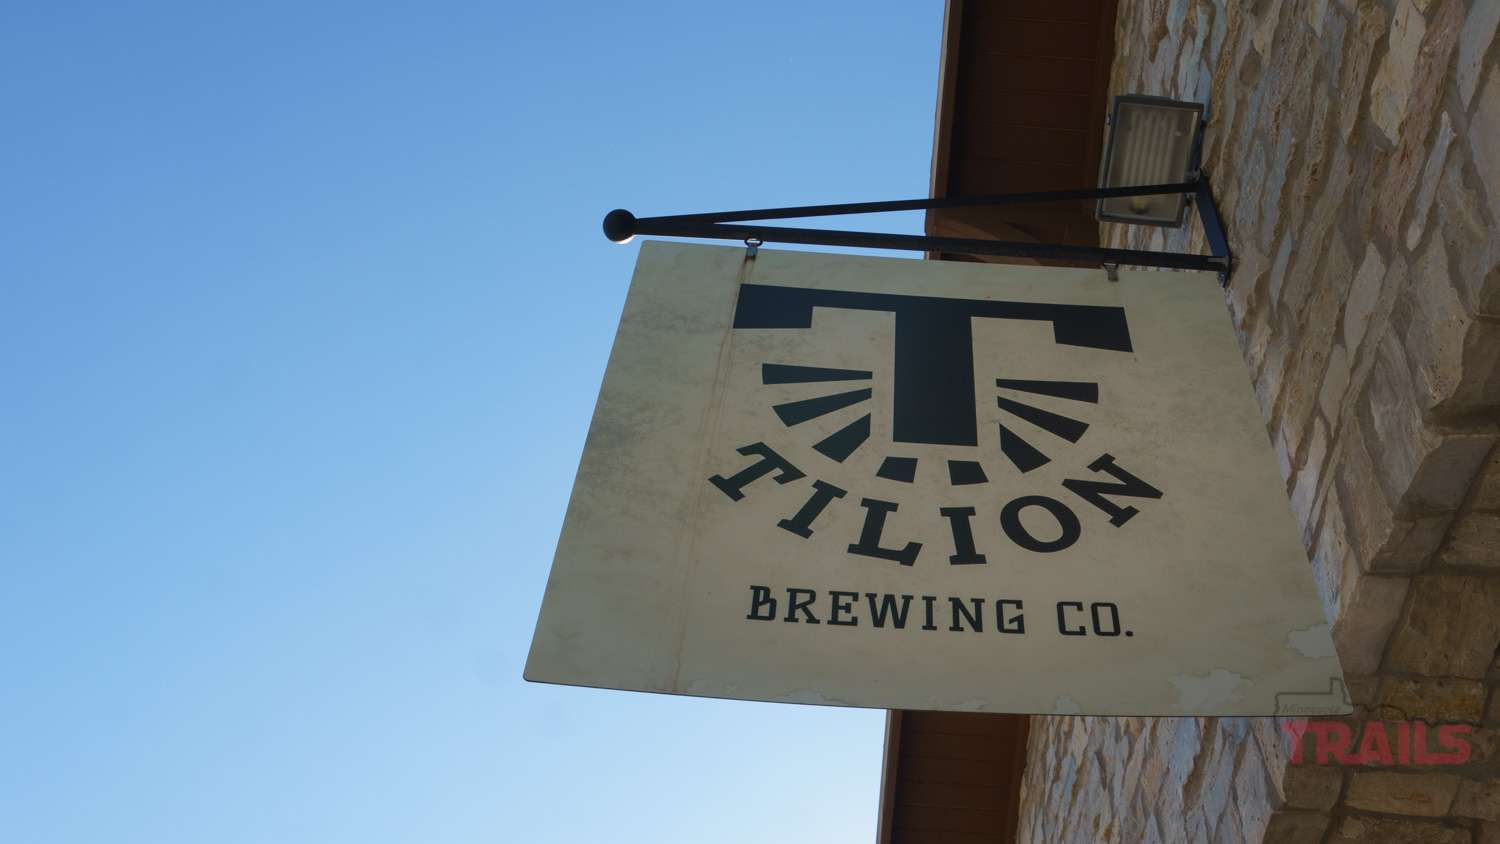 Tilion Brewing sign hanging over the entrance to the brewery